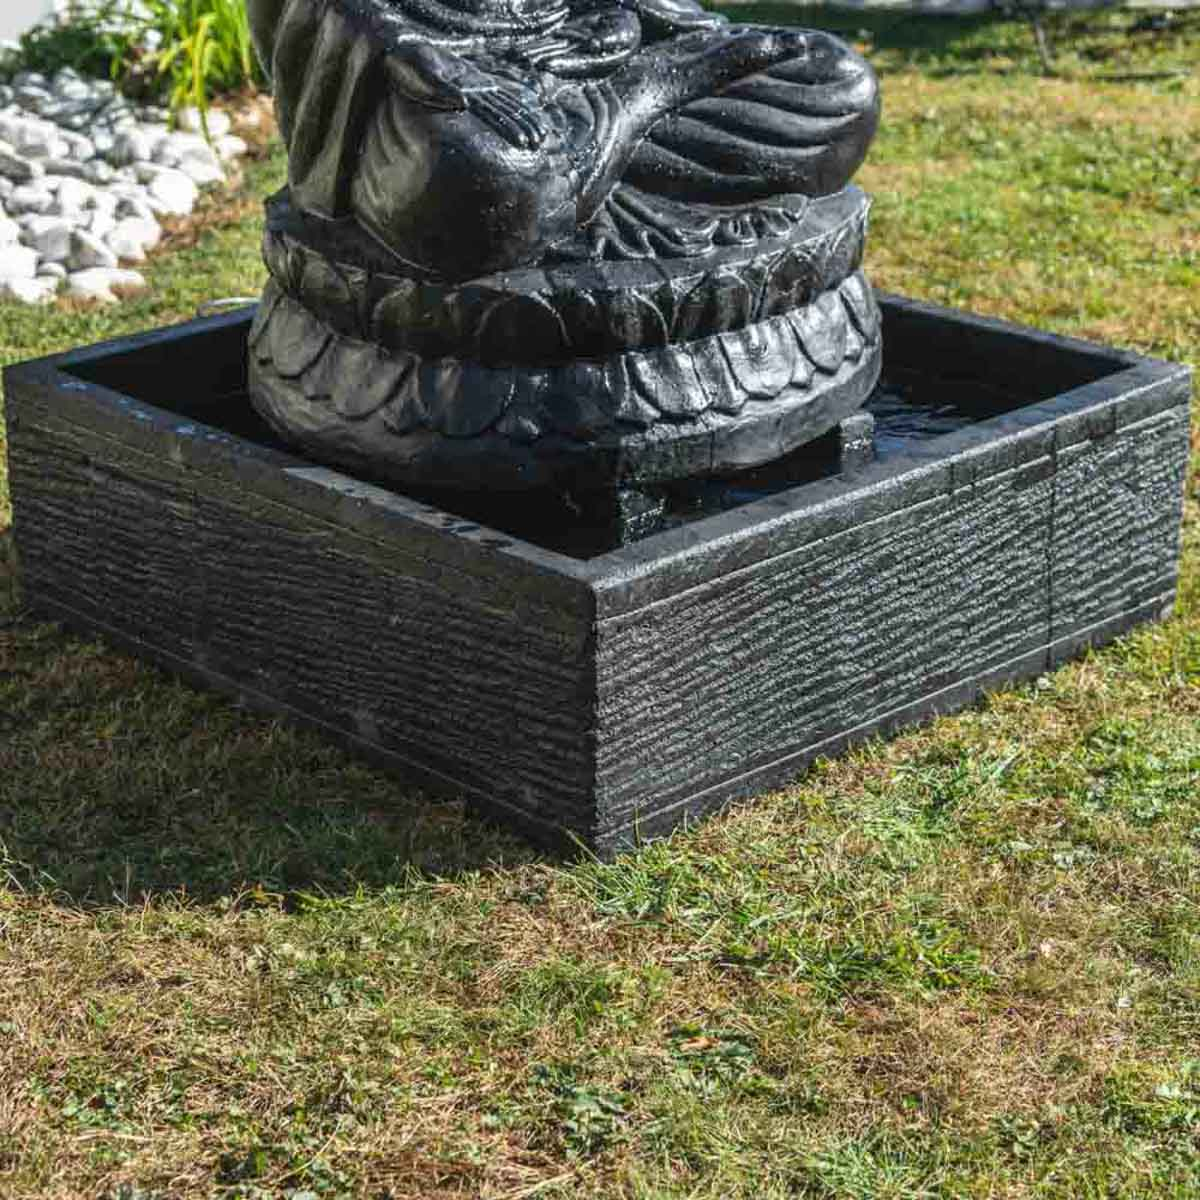 fontaine de jardin fontaine avec bassin bouddha assis. Black Bedroom Furniture Sets. Home Design Ideas